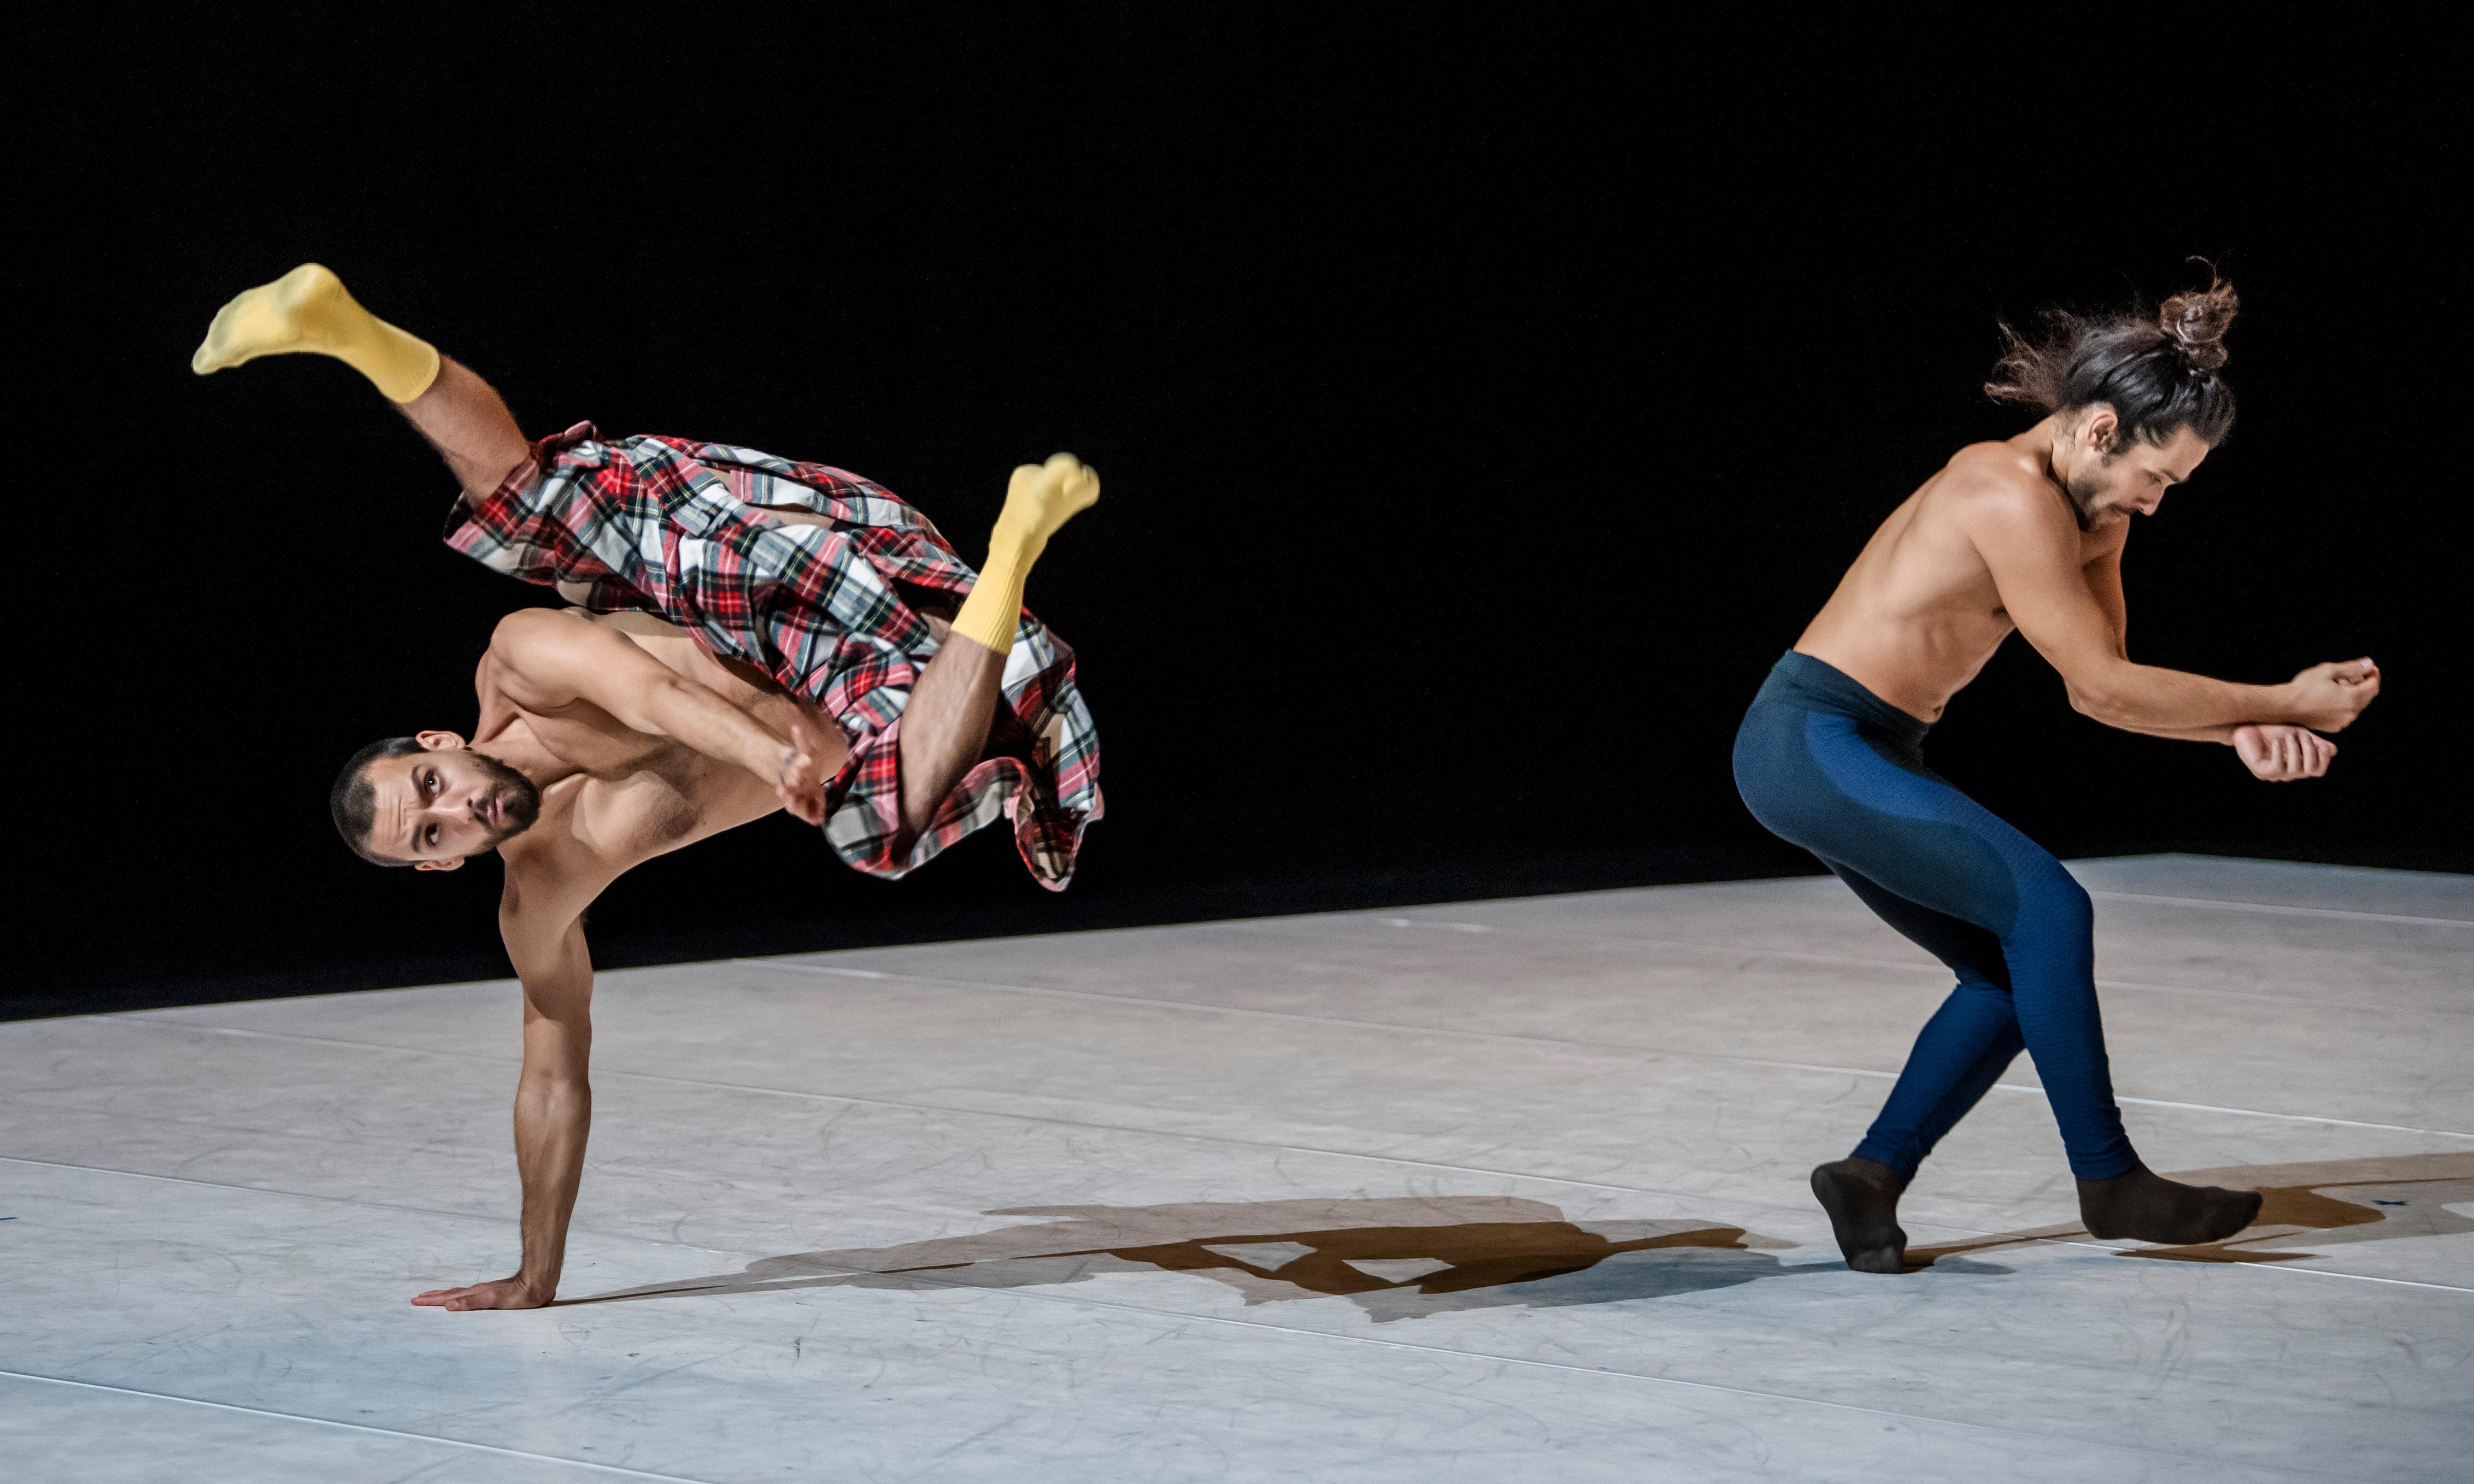 Emanuel Gat: Works review – moving, mysterious dance is a delight